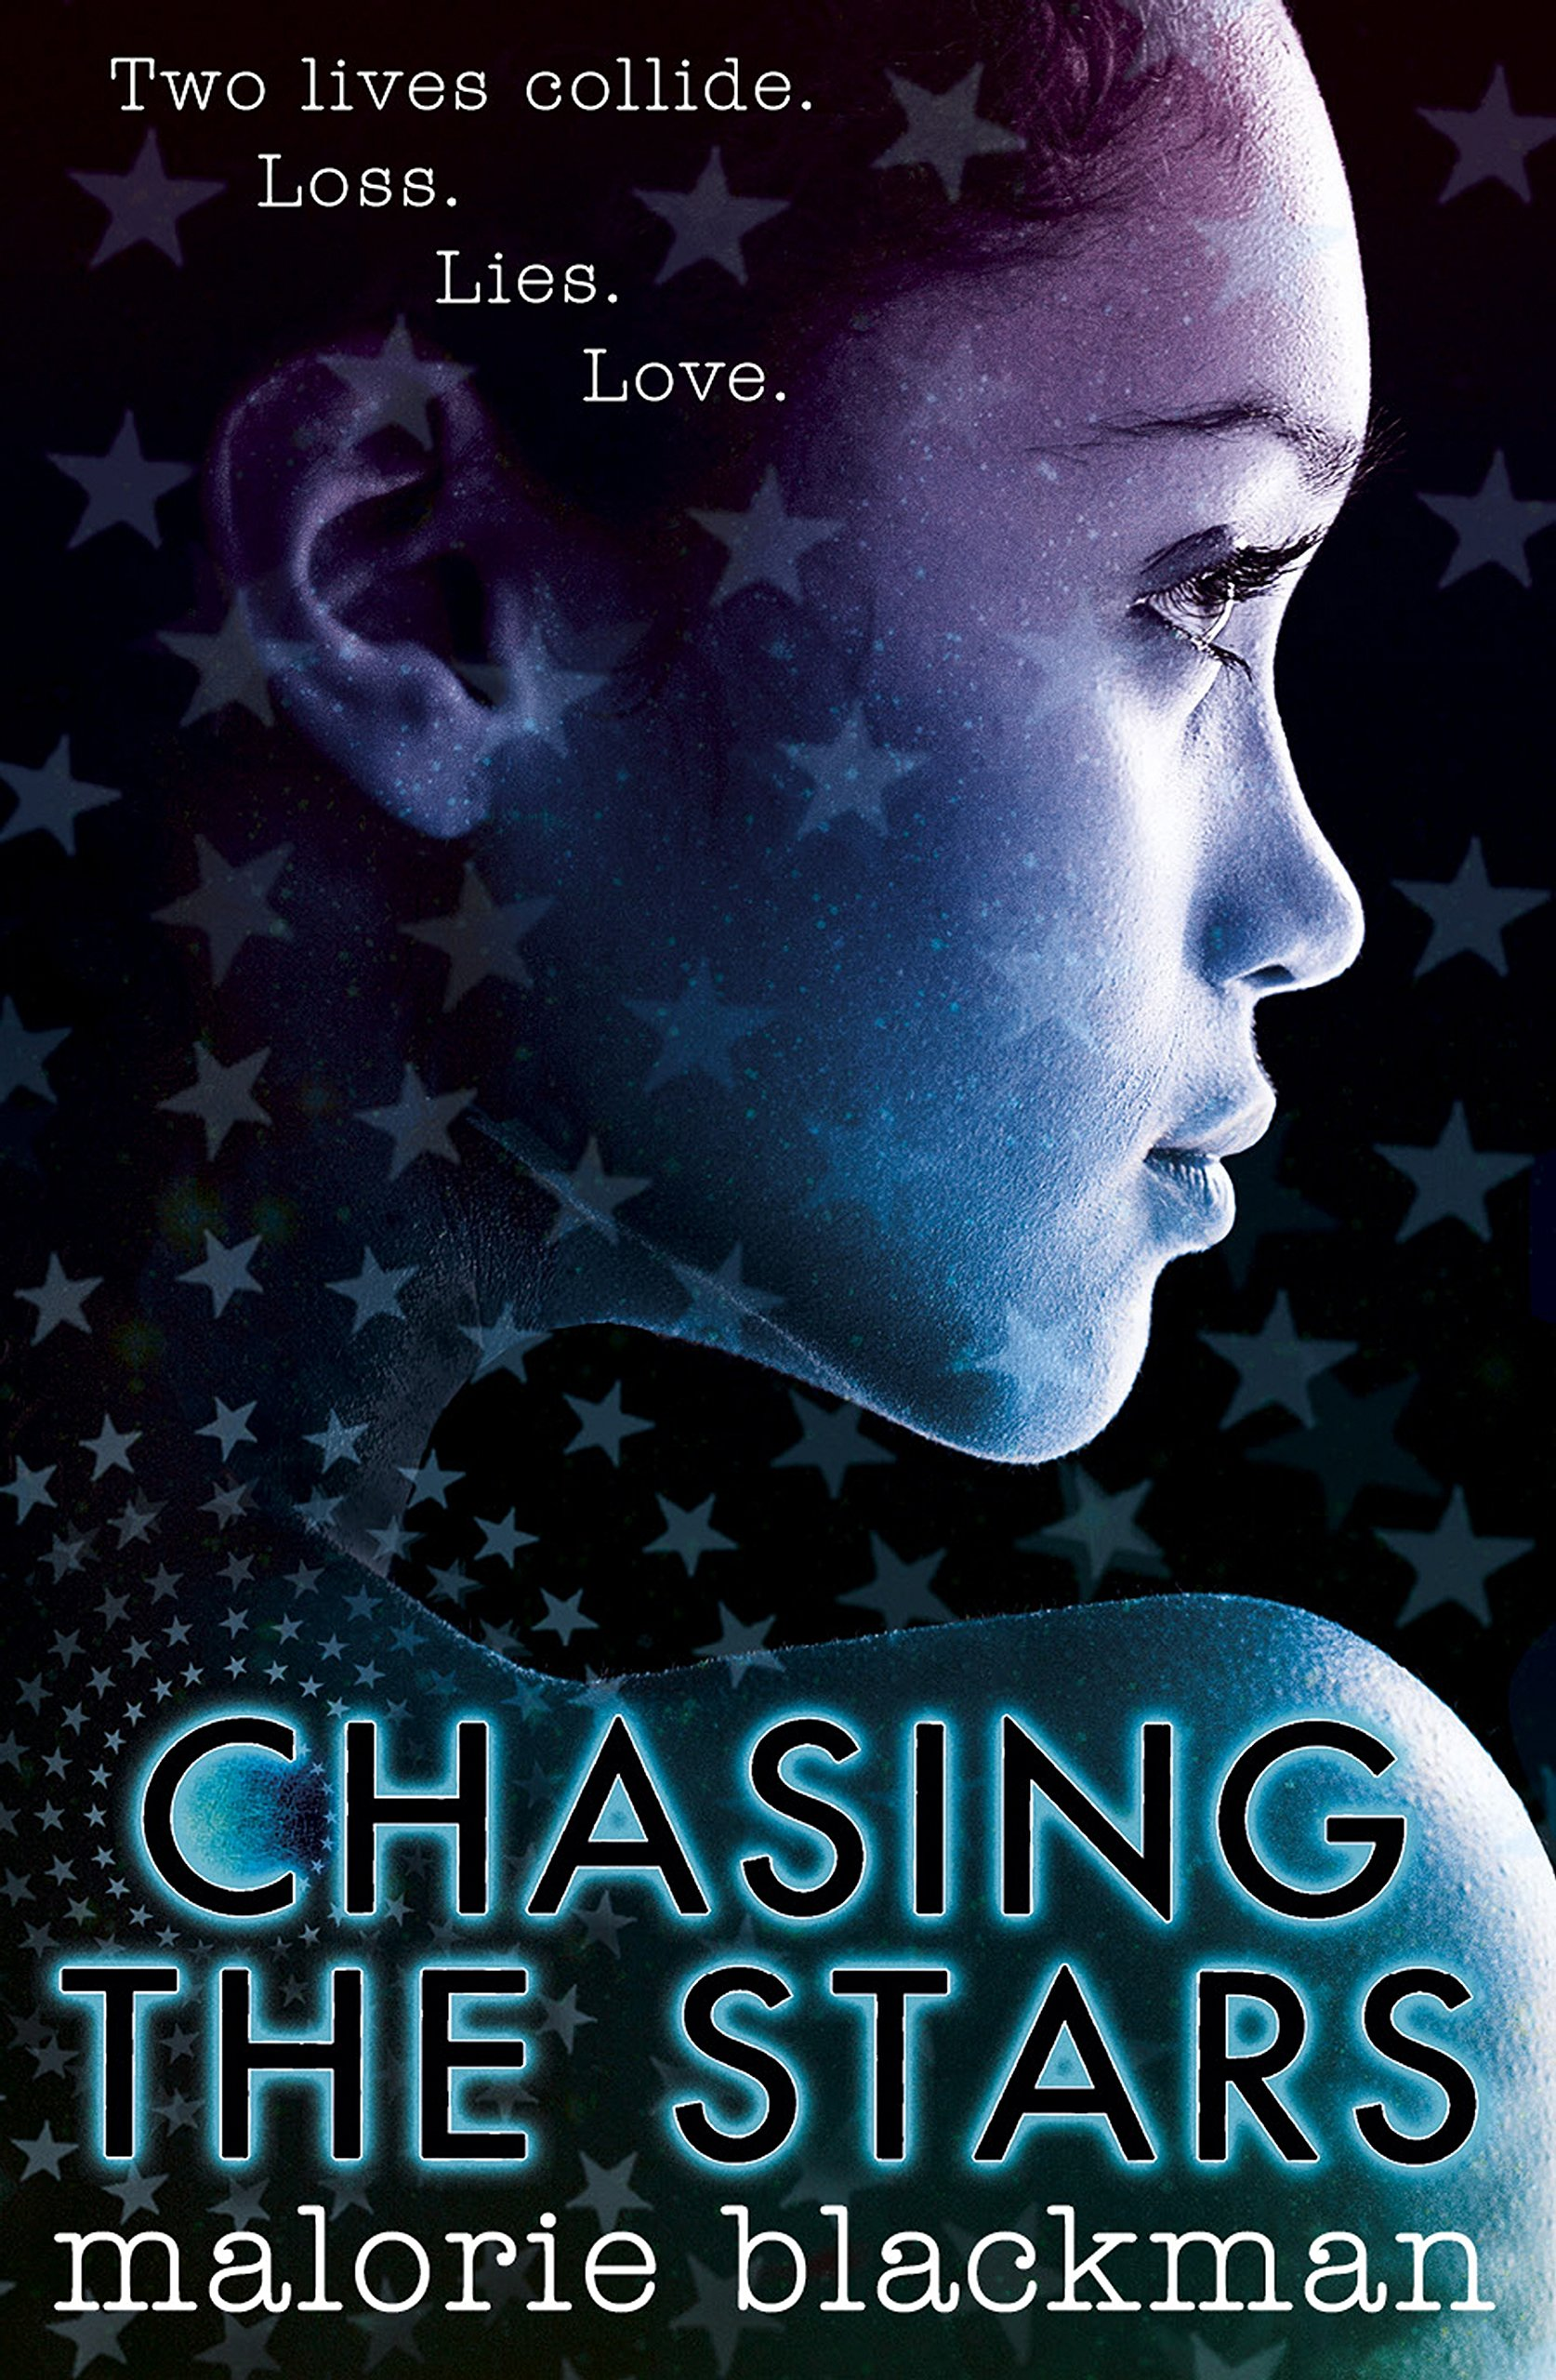 Chasing the Stars: Amazon.co.uk: Blackman, Malorie: 9780857531414 ...